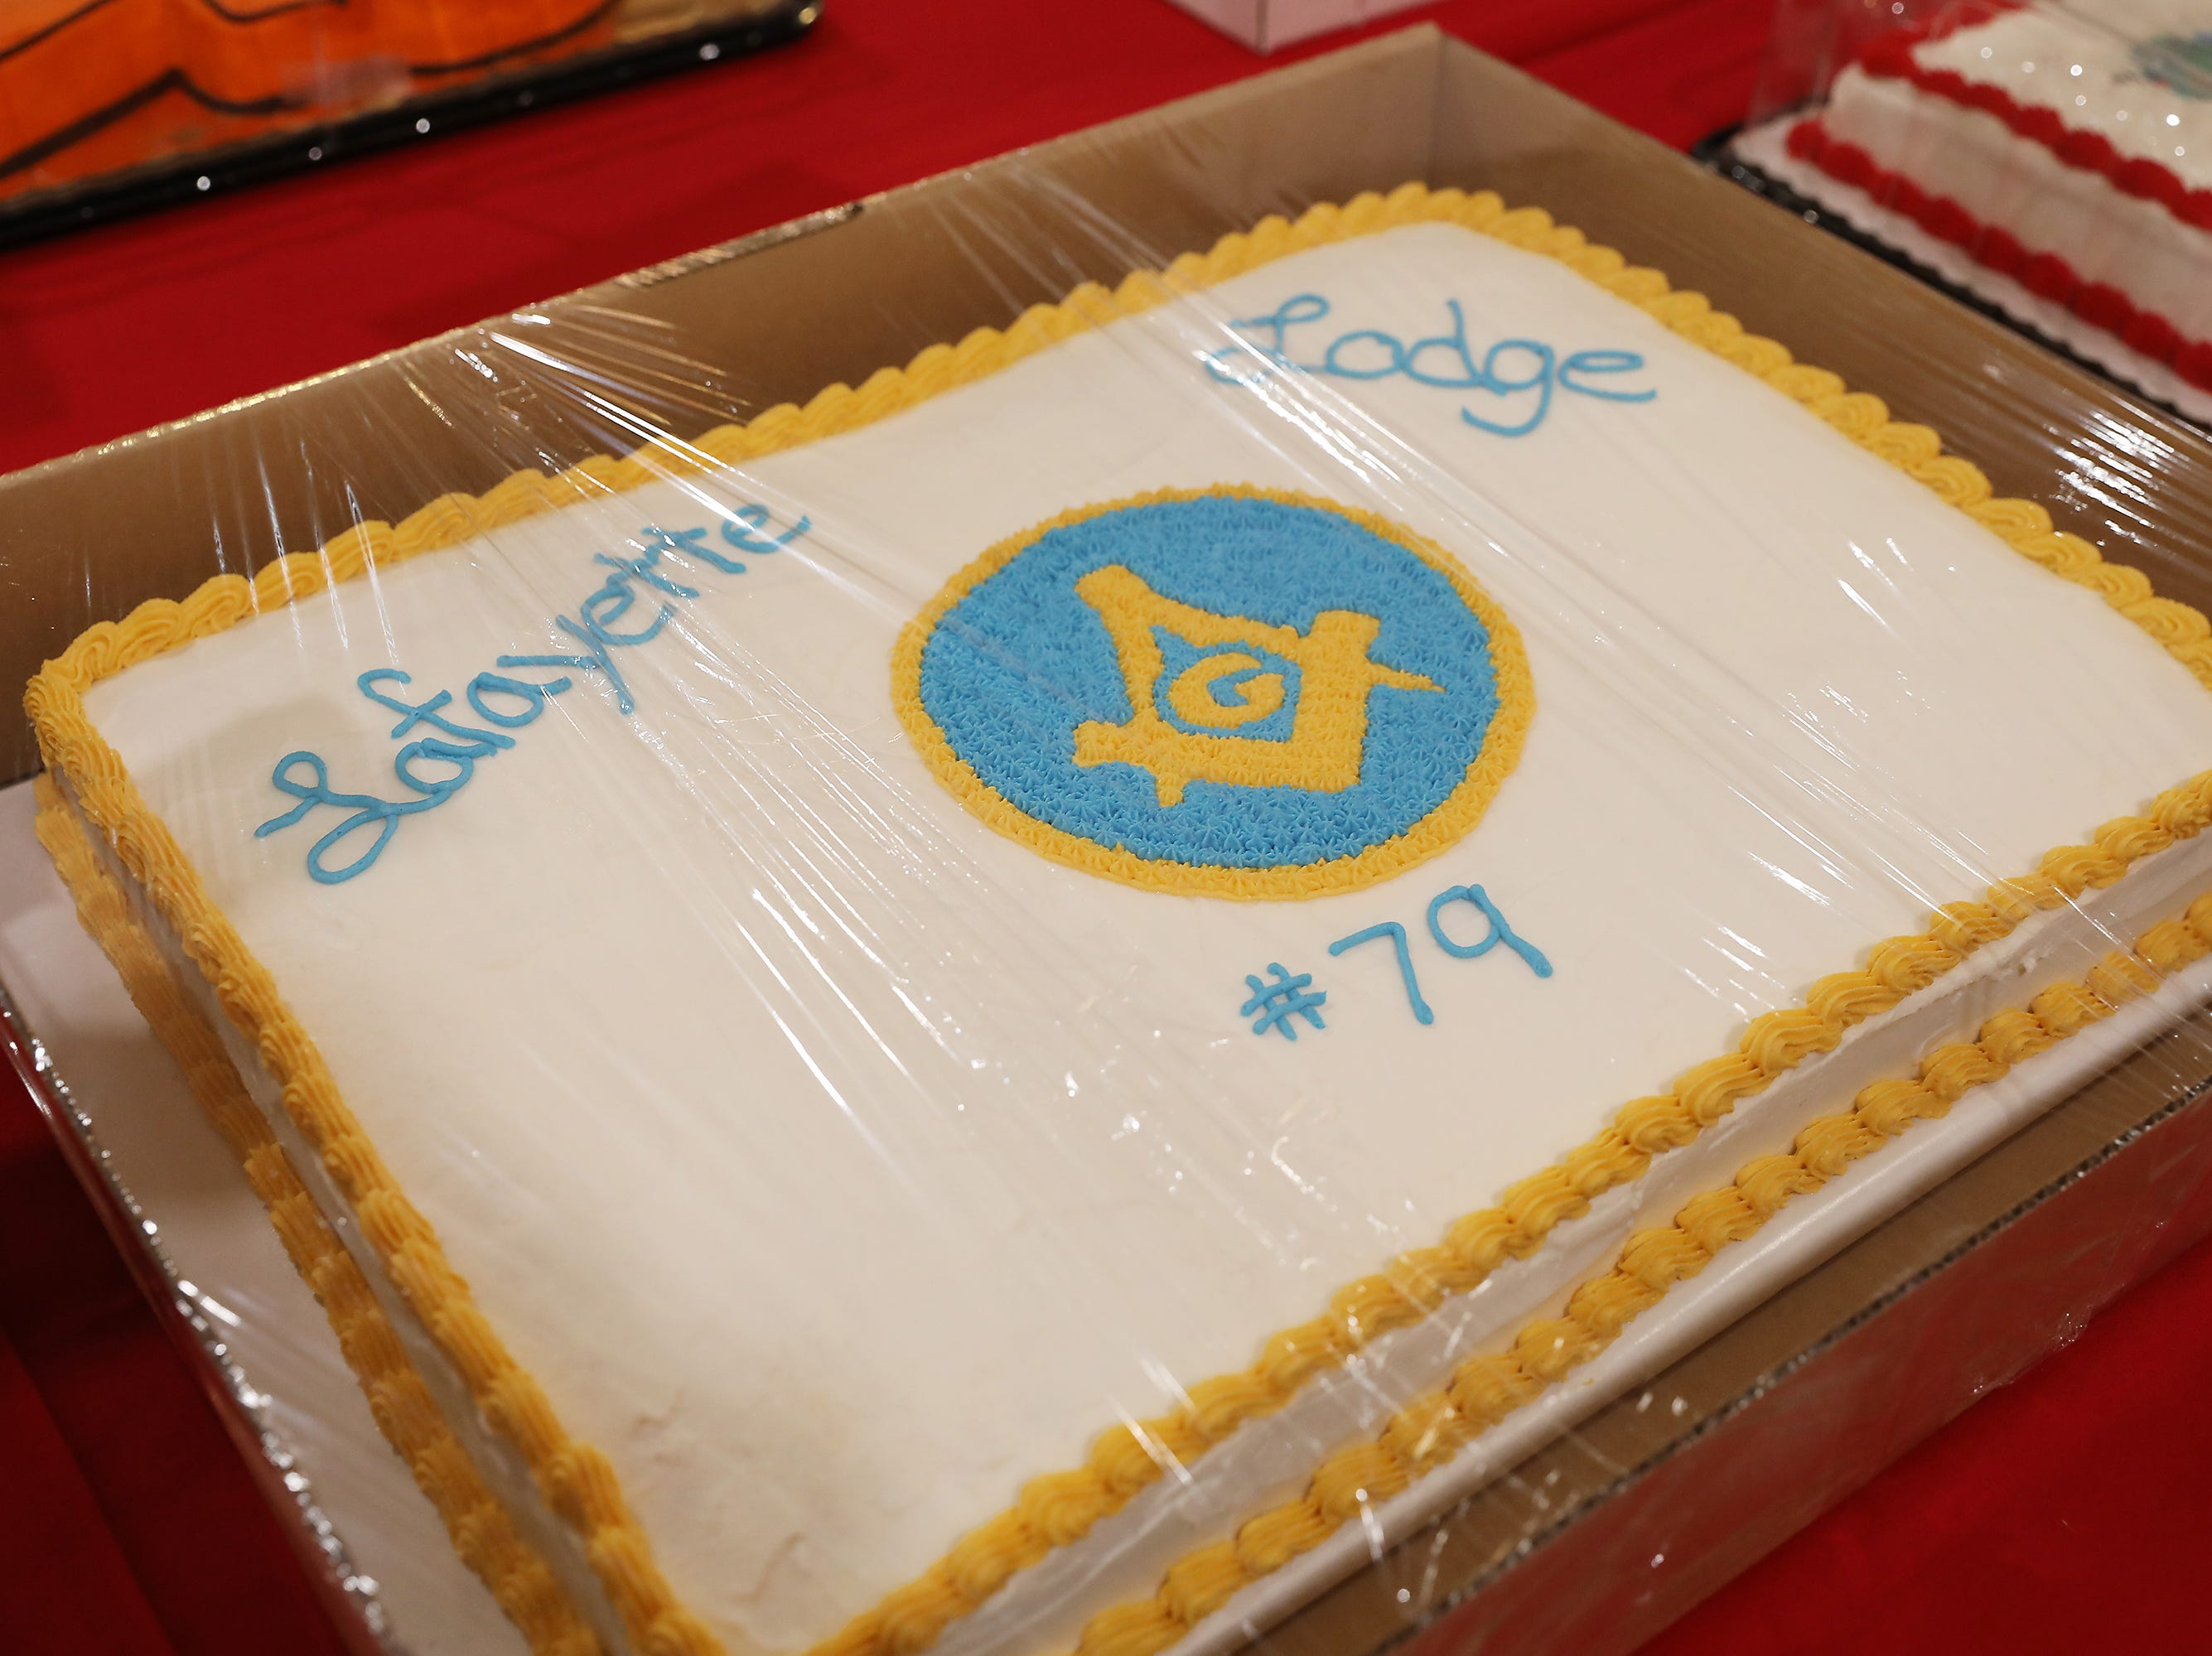 11:45 A.M. Friday cake 292 La Fayette Lodge #79 Free and Accepted Masons - $300 gift card to Schroder Chiropracti, 1 day rental of Masonic Temple dining hall, $250 to a local charity in your name; $650